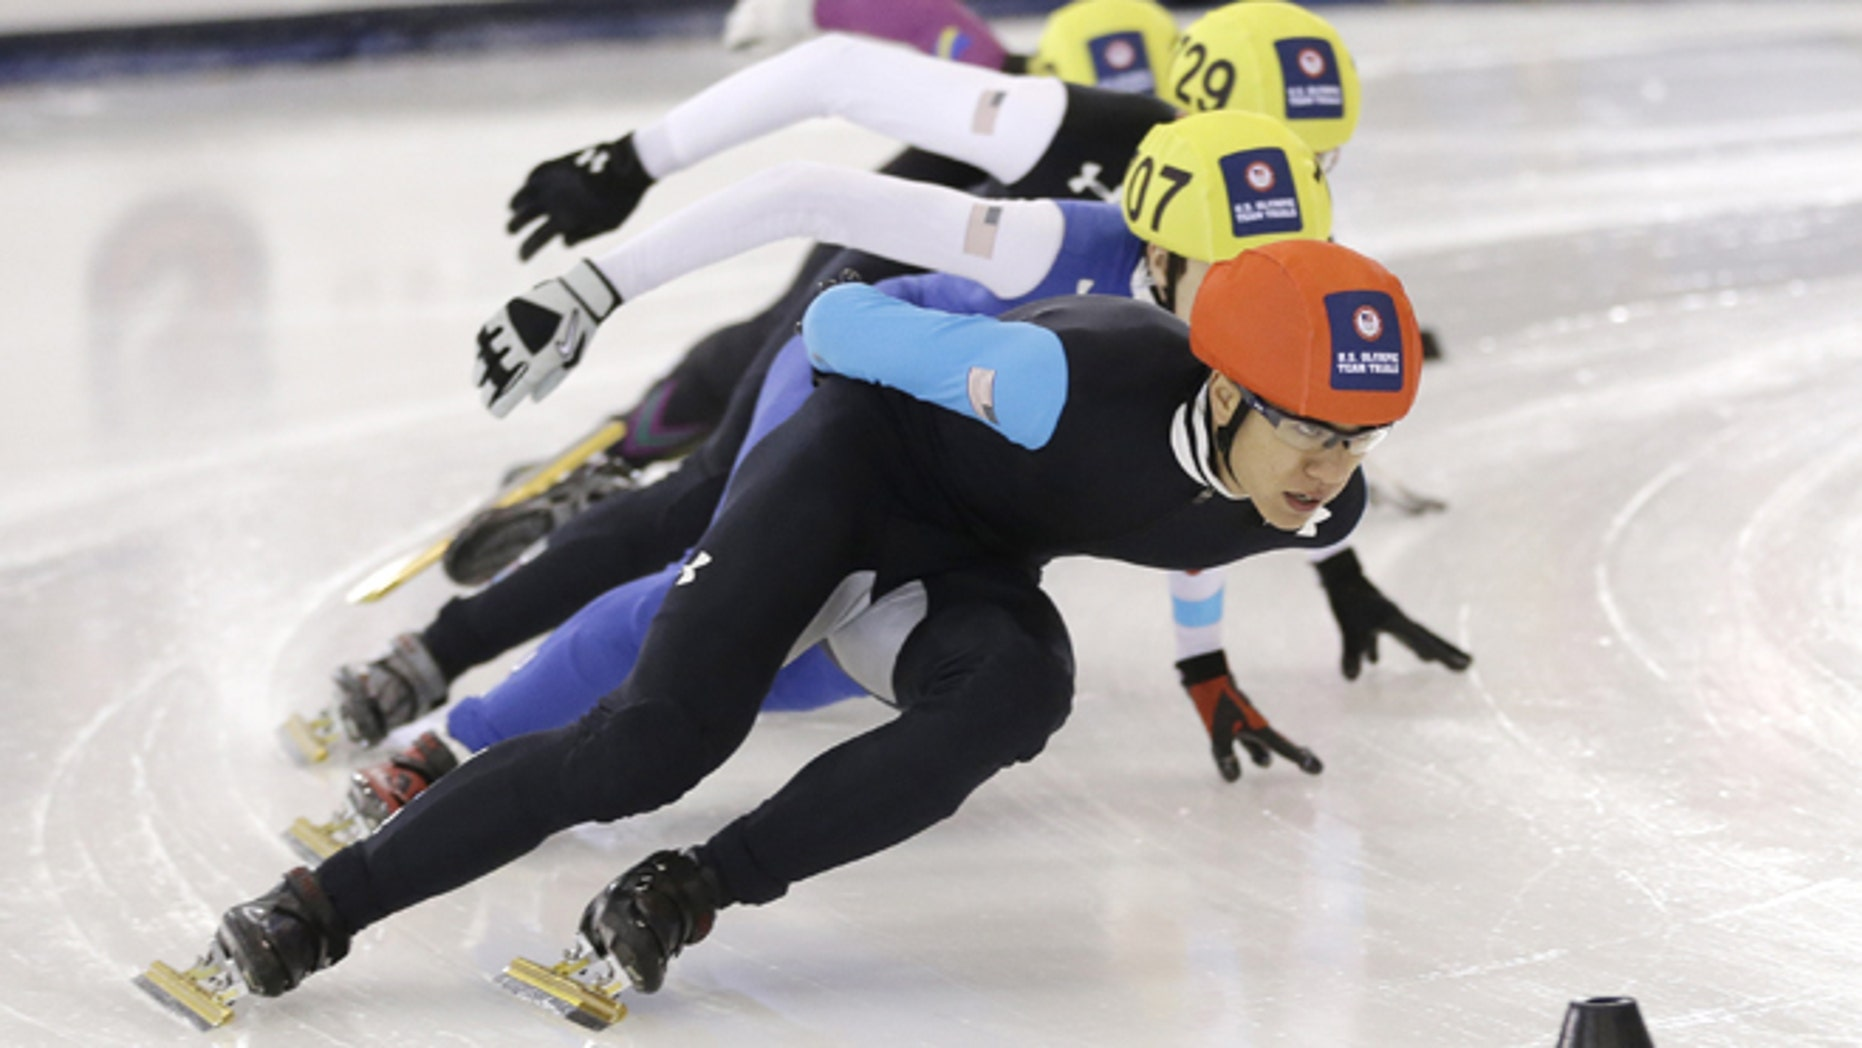 Jan. 5, 2014: In this file photo, J.R. Celski leads the pack as he competes in the men's 1,000-meter race at the U.S. Olympic short track speedskating trials in Kearns, Utah. The 23-year-old from Federal Way, Wash., will compete at his second Olympics, looking to add to the pair of bronze medals he won at the 2010 Vancouver Games.